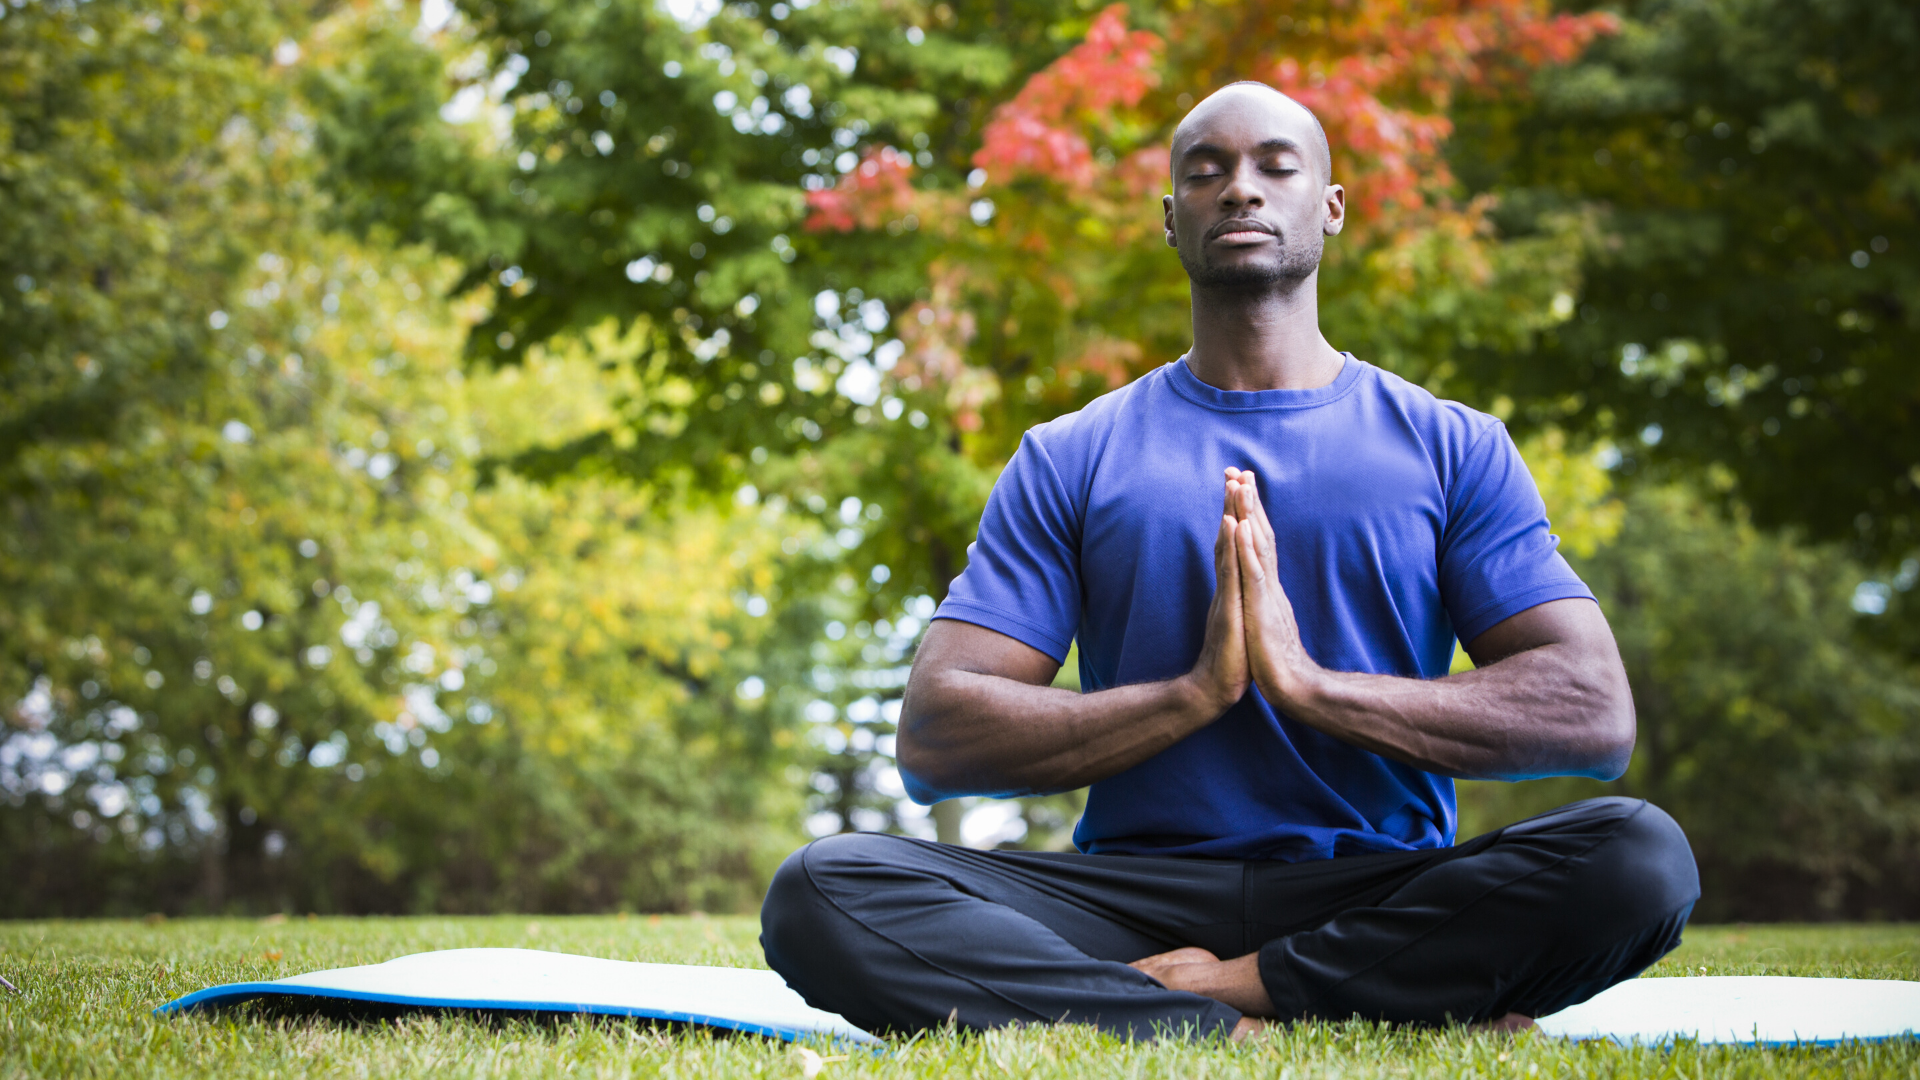 Man practicing yoga meditation with eyes closed.